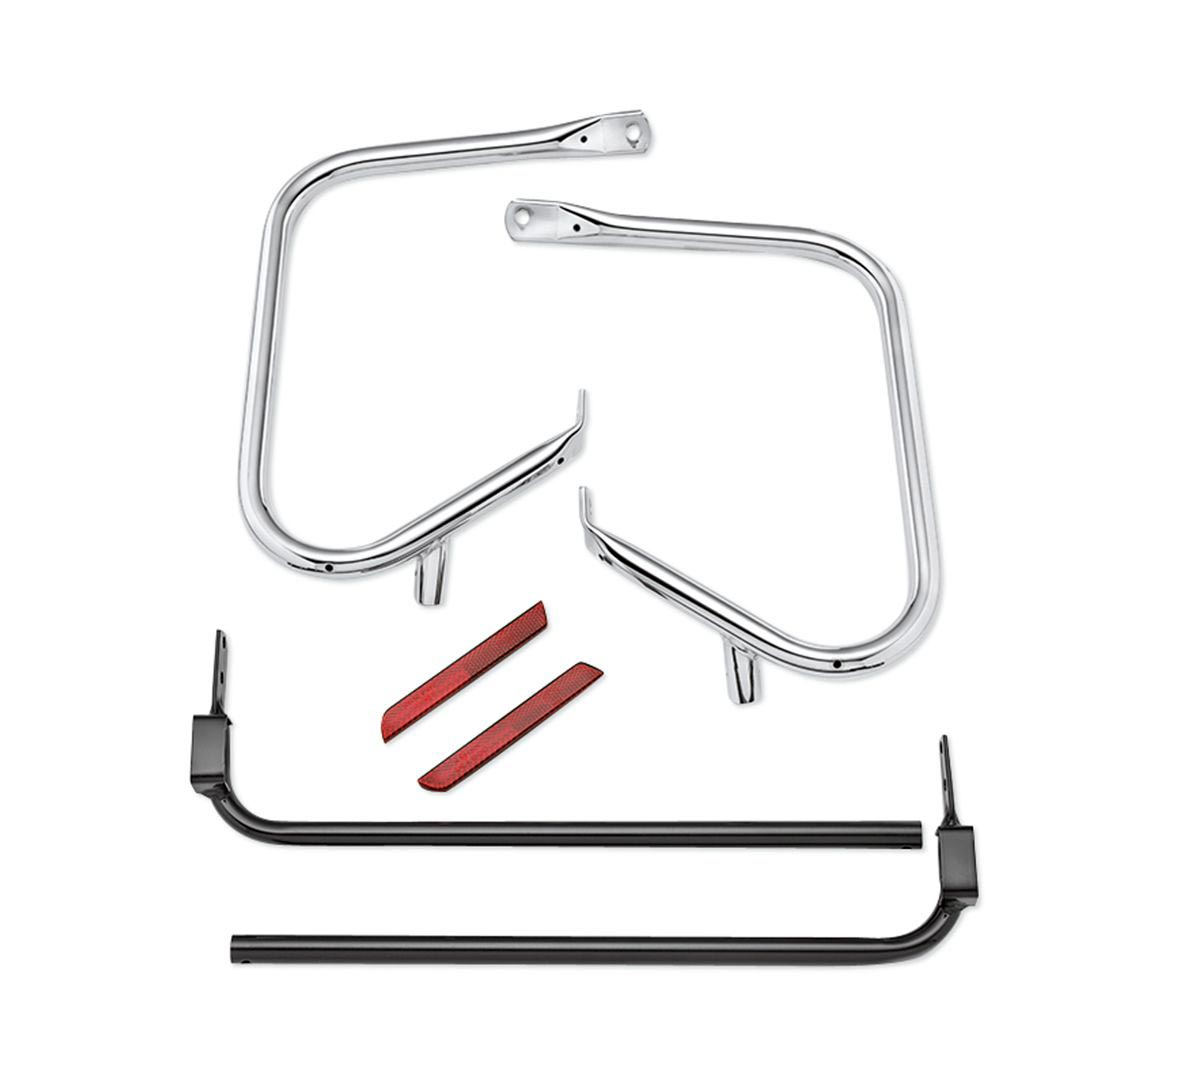 49282-09b rear saddlebag guard kit